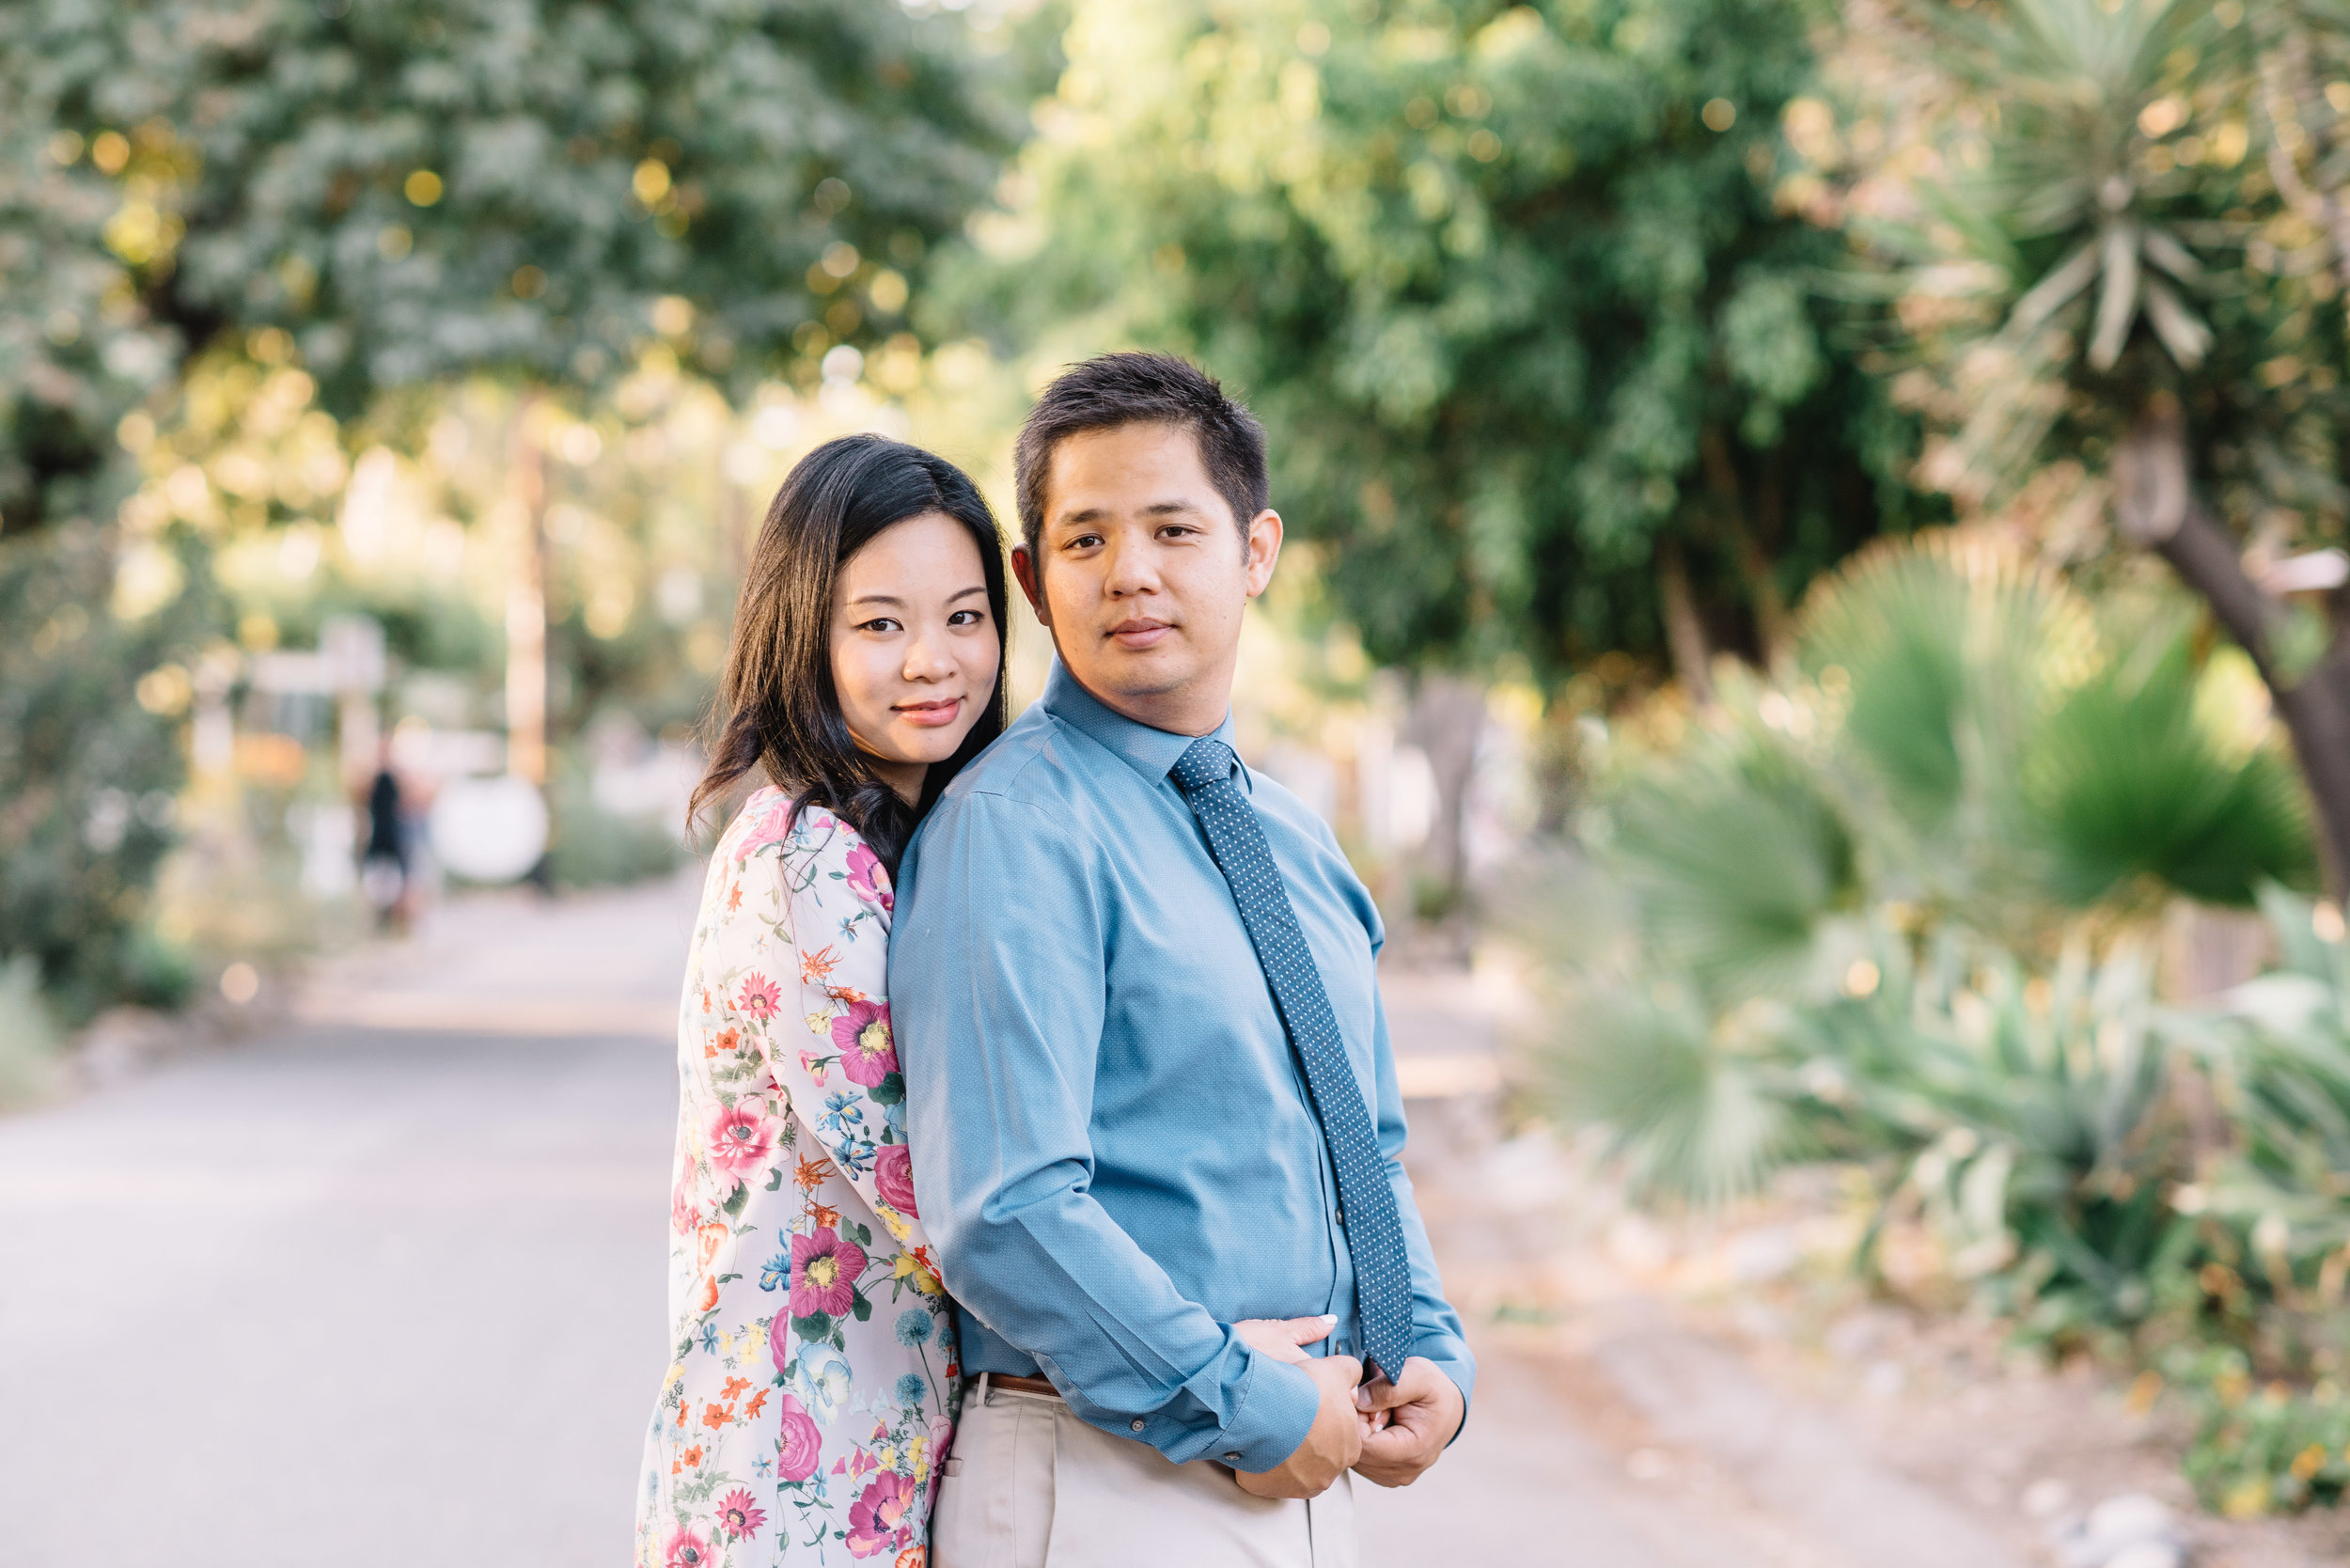 jennifer-jayn-photography-san-juan-capistrano-engagement-session-05.jpg